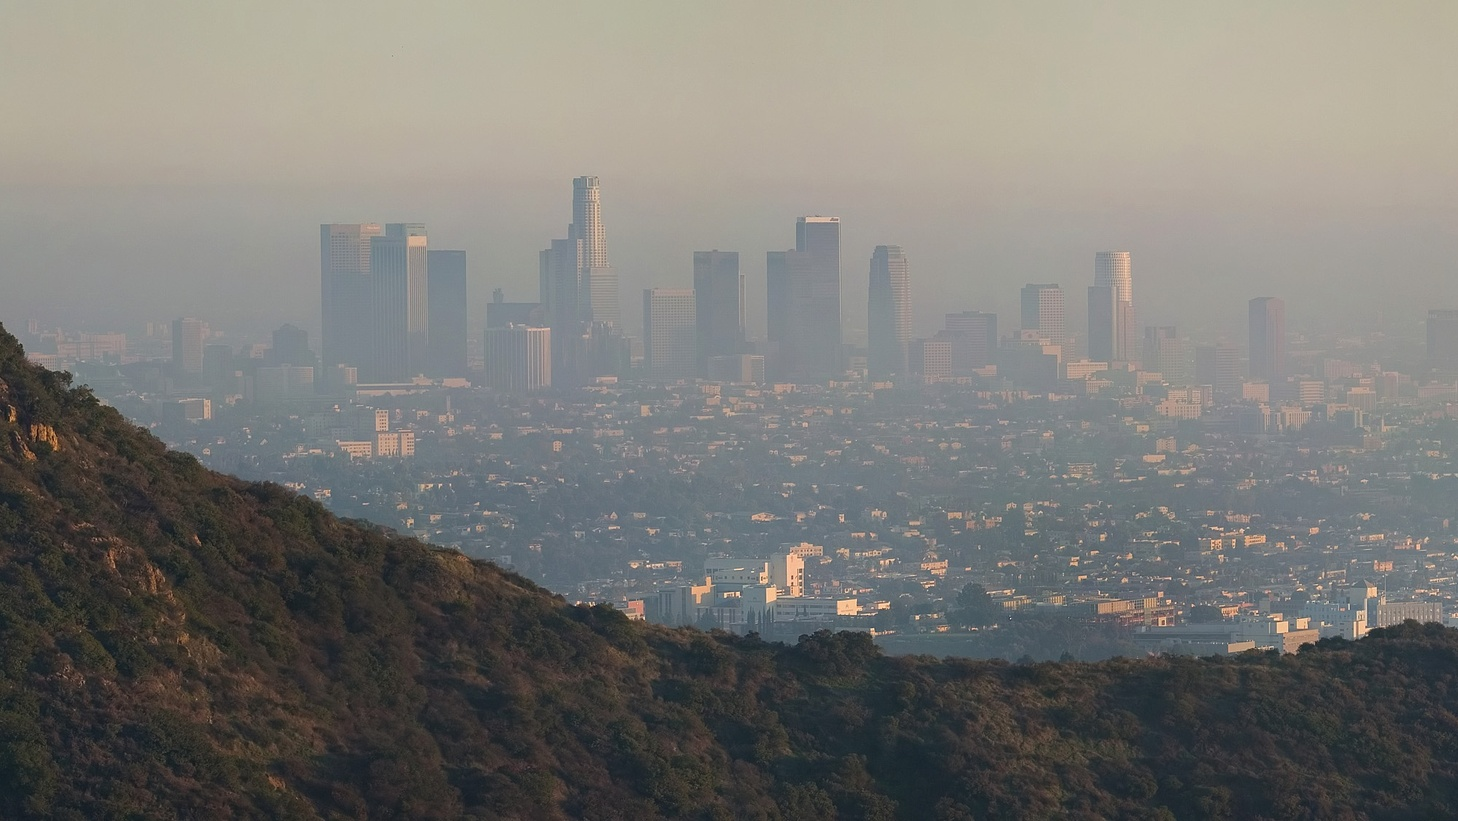 Looking down from the Hollywood Hills, with Griffith Observatory on the hill in the foreground, air pollution is visible in downtown Los Angeles on a late afternoon.